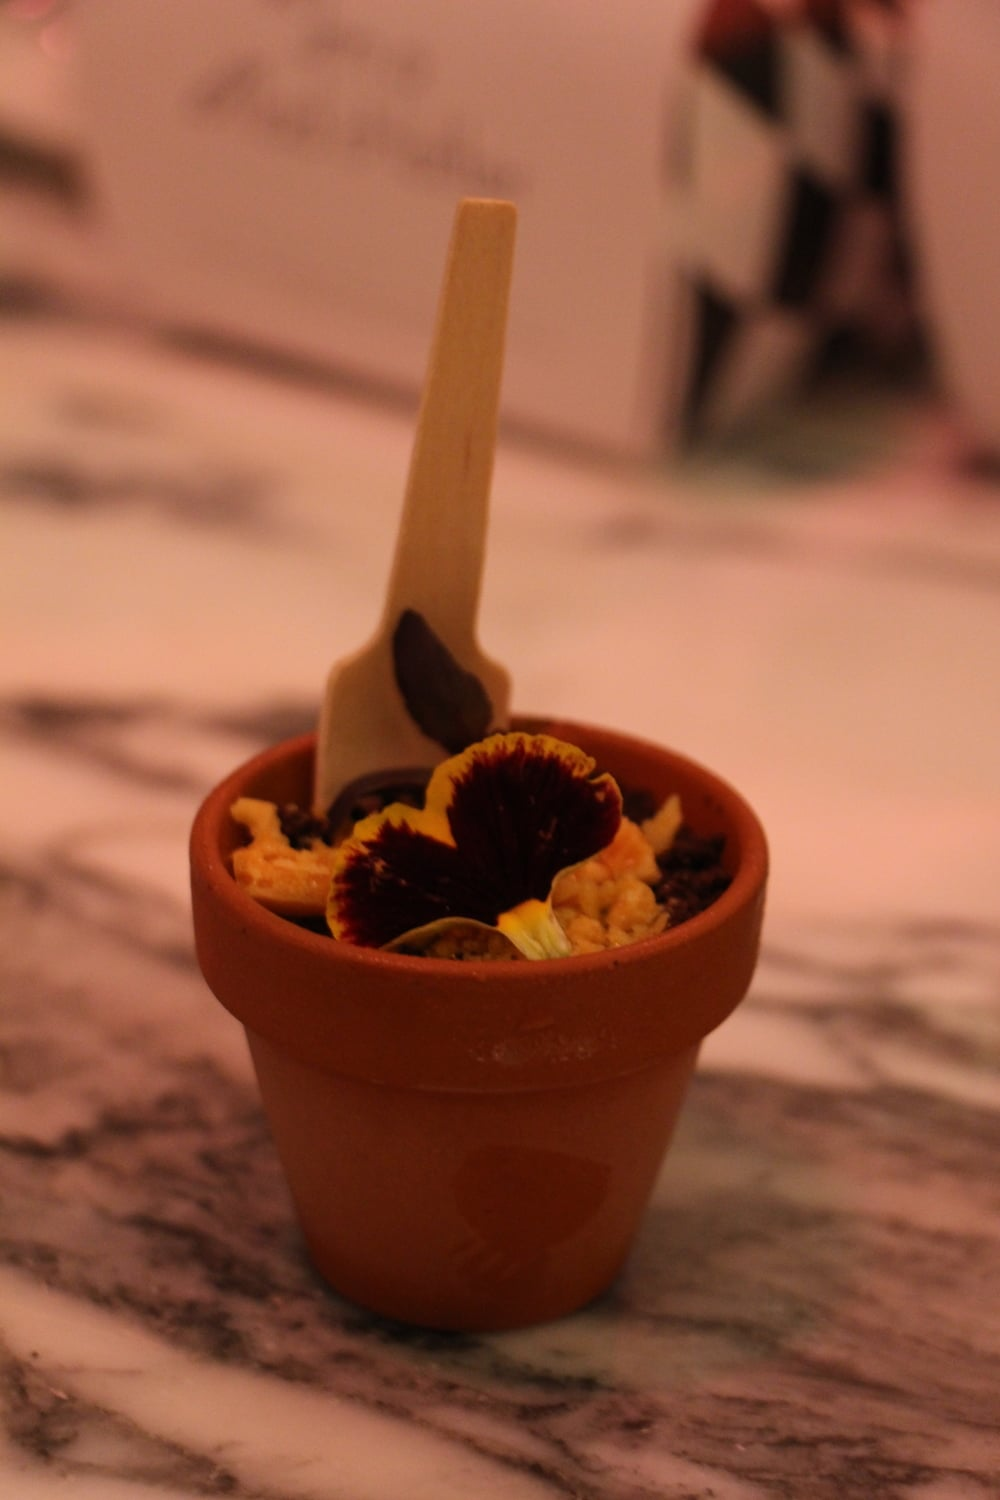 Ice cream with chocolate crumbs in a mini pot – too cute!